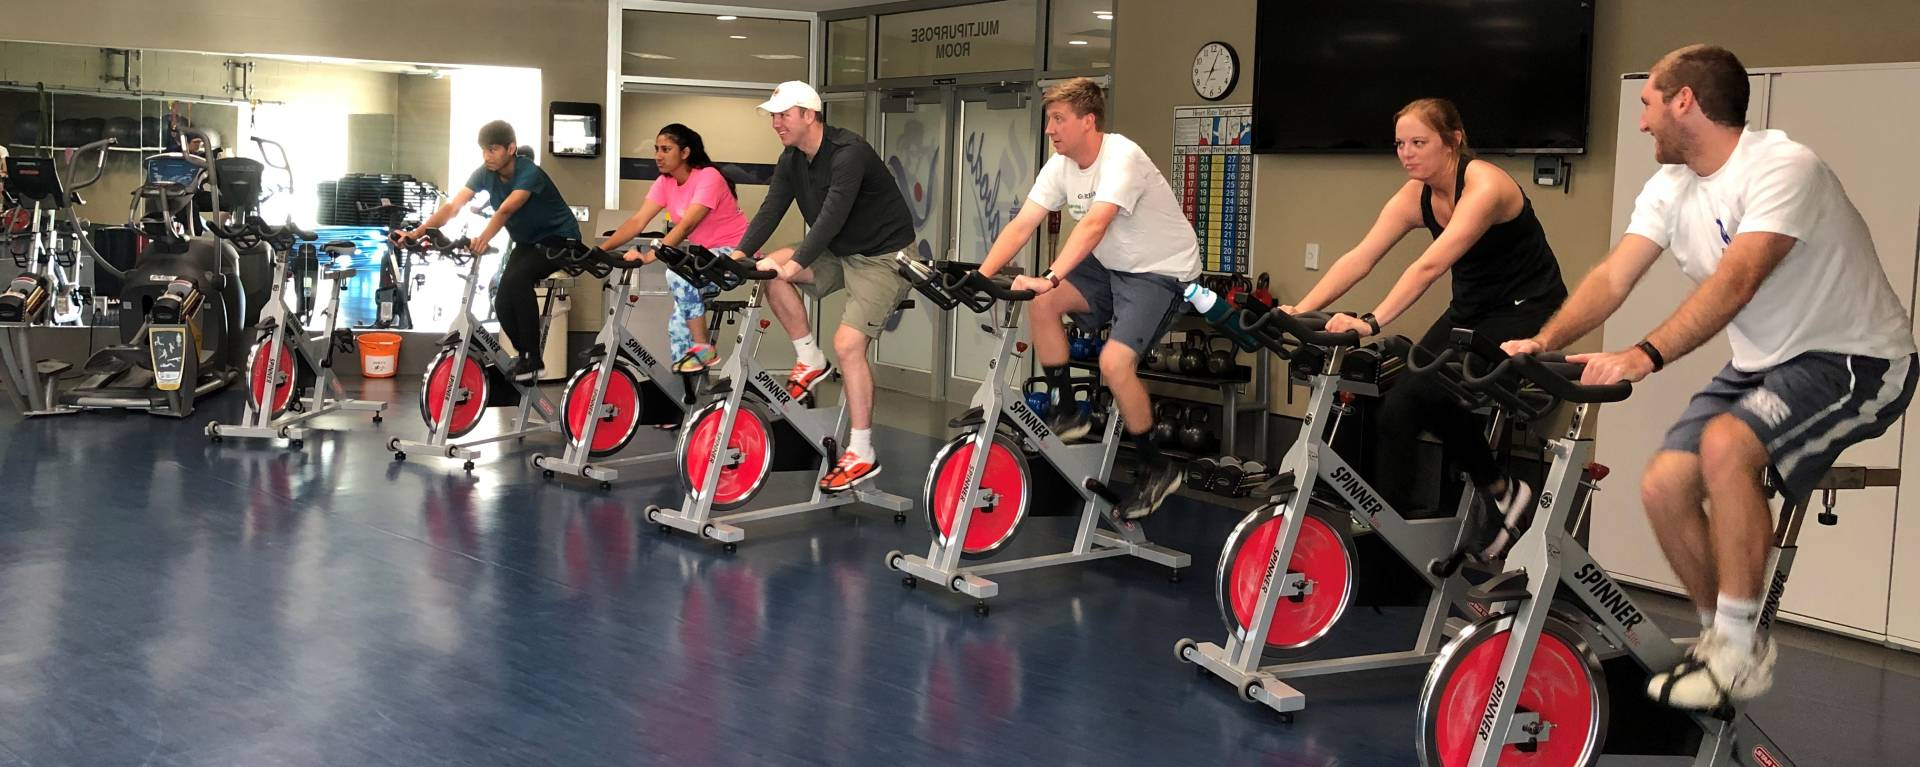 group cycling class